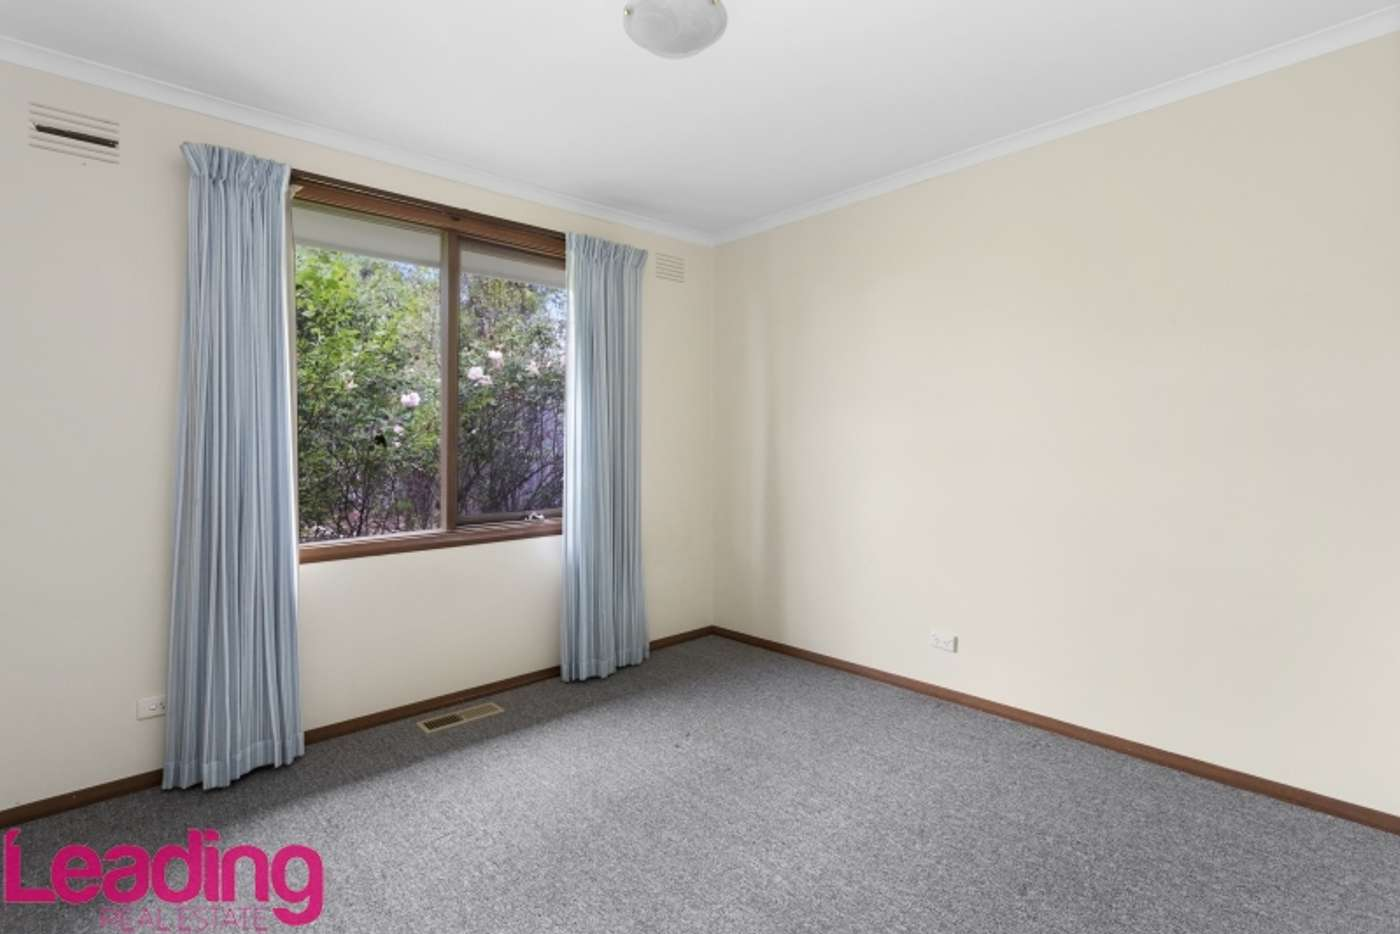 Sixth view of Homely house listing, 2 Mudie Avenue, Sunbury VIC 3429